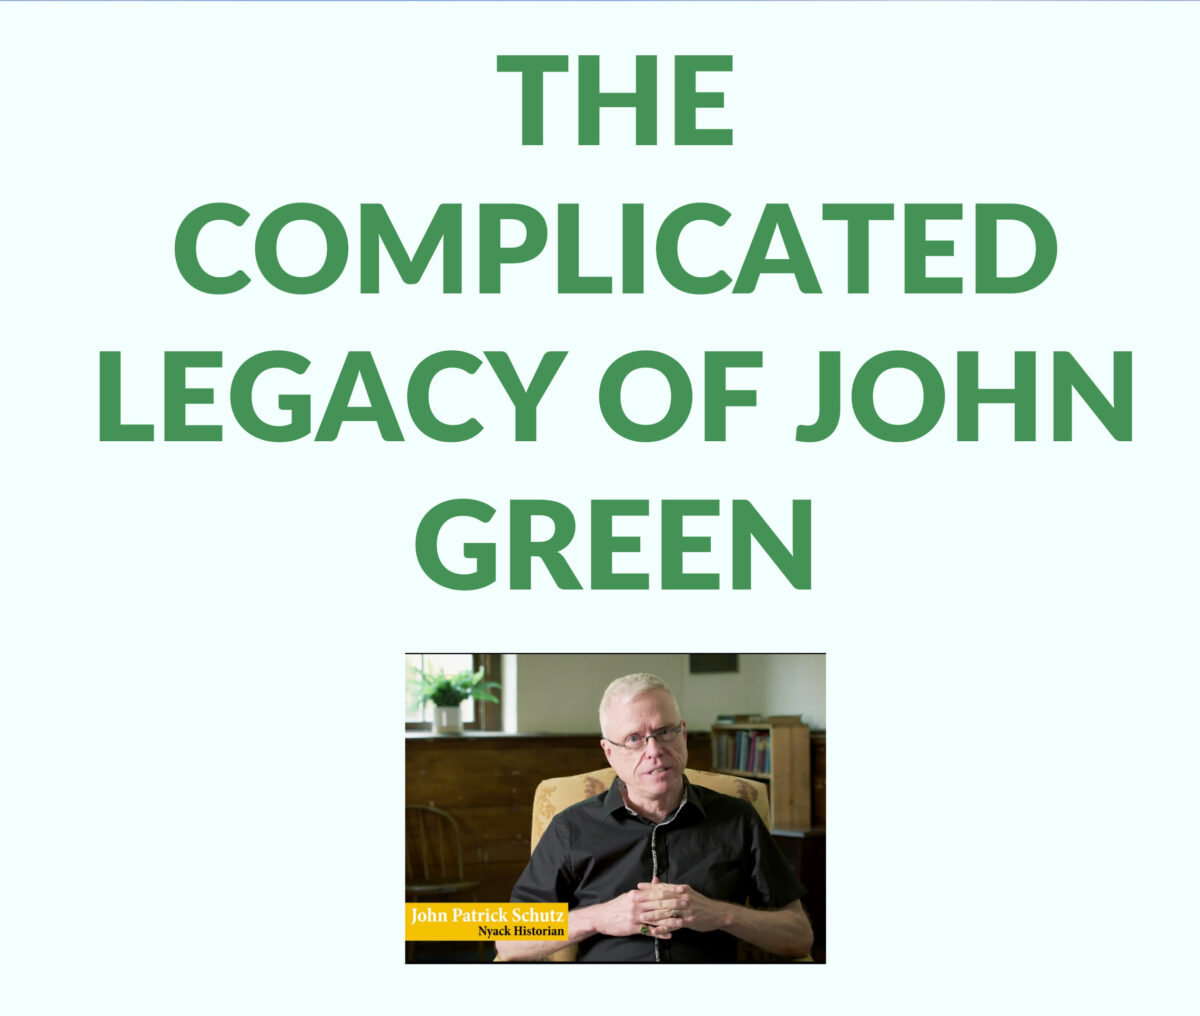 Armchair Lecture: The Complicated Legacy of John Green